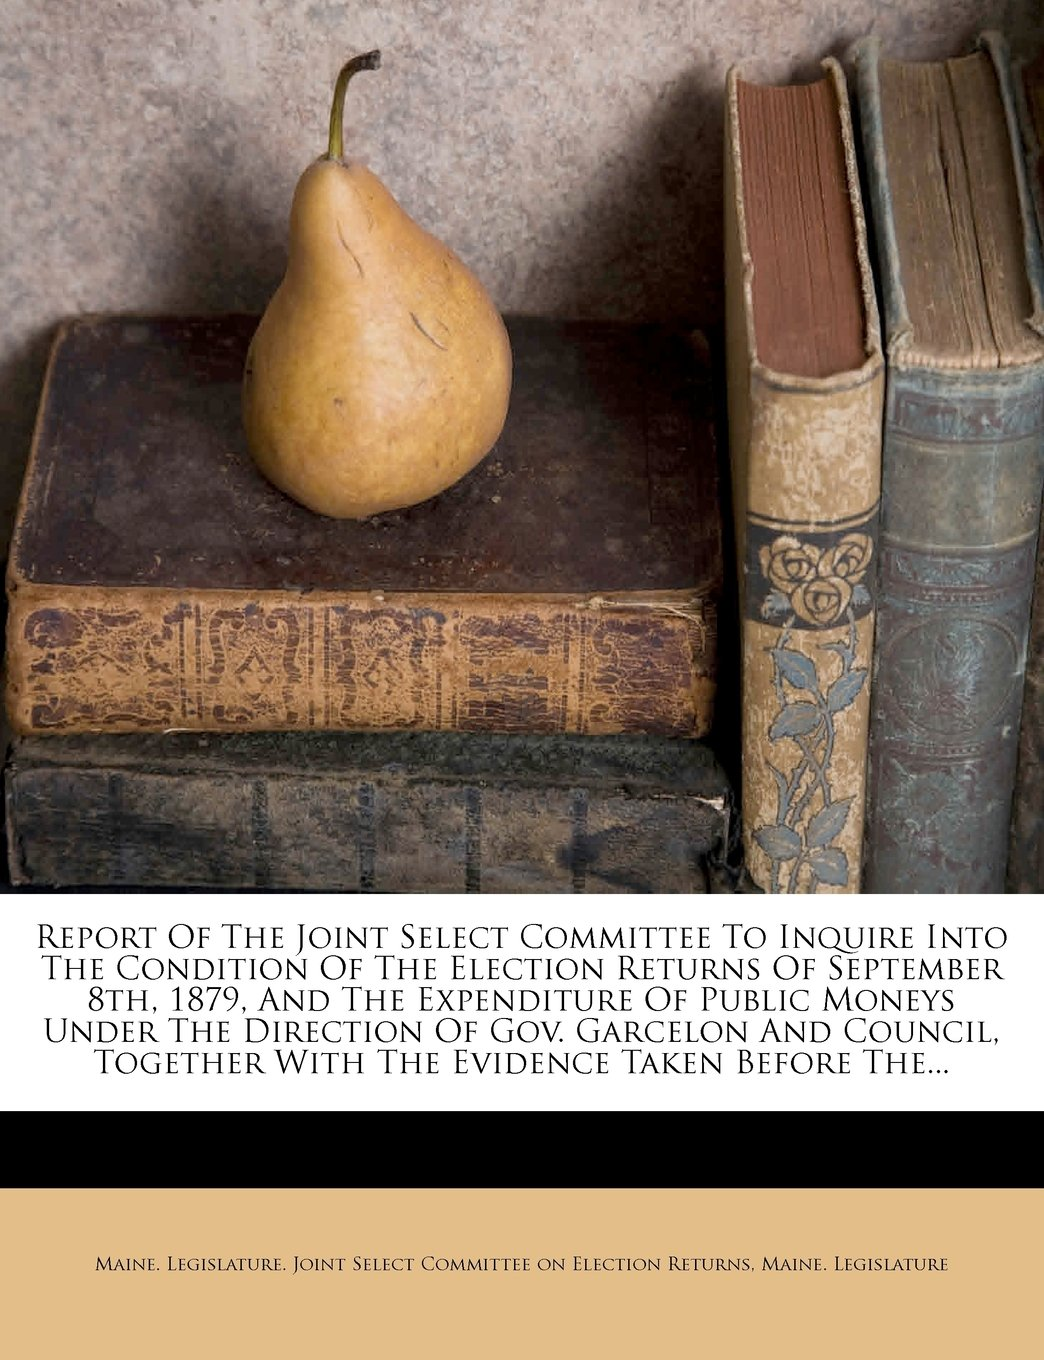 Download Report Of The Joint Select Committee To Inquire Into The Condition Of The Election Returns Of September 8th, 1879, And The Expenditure Of Public ... With The Evidence Taken Before The... PDF